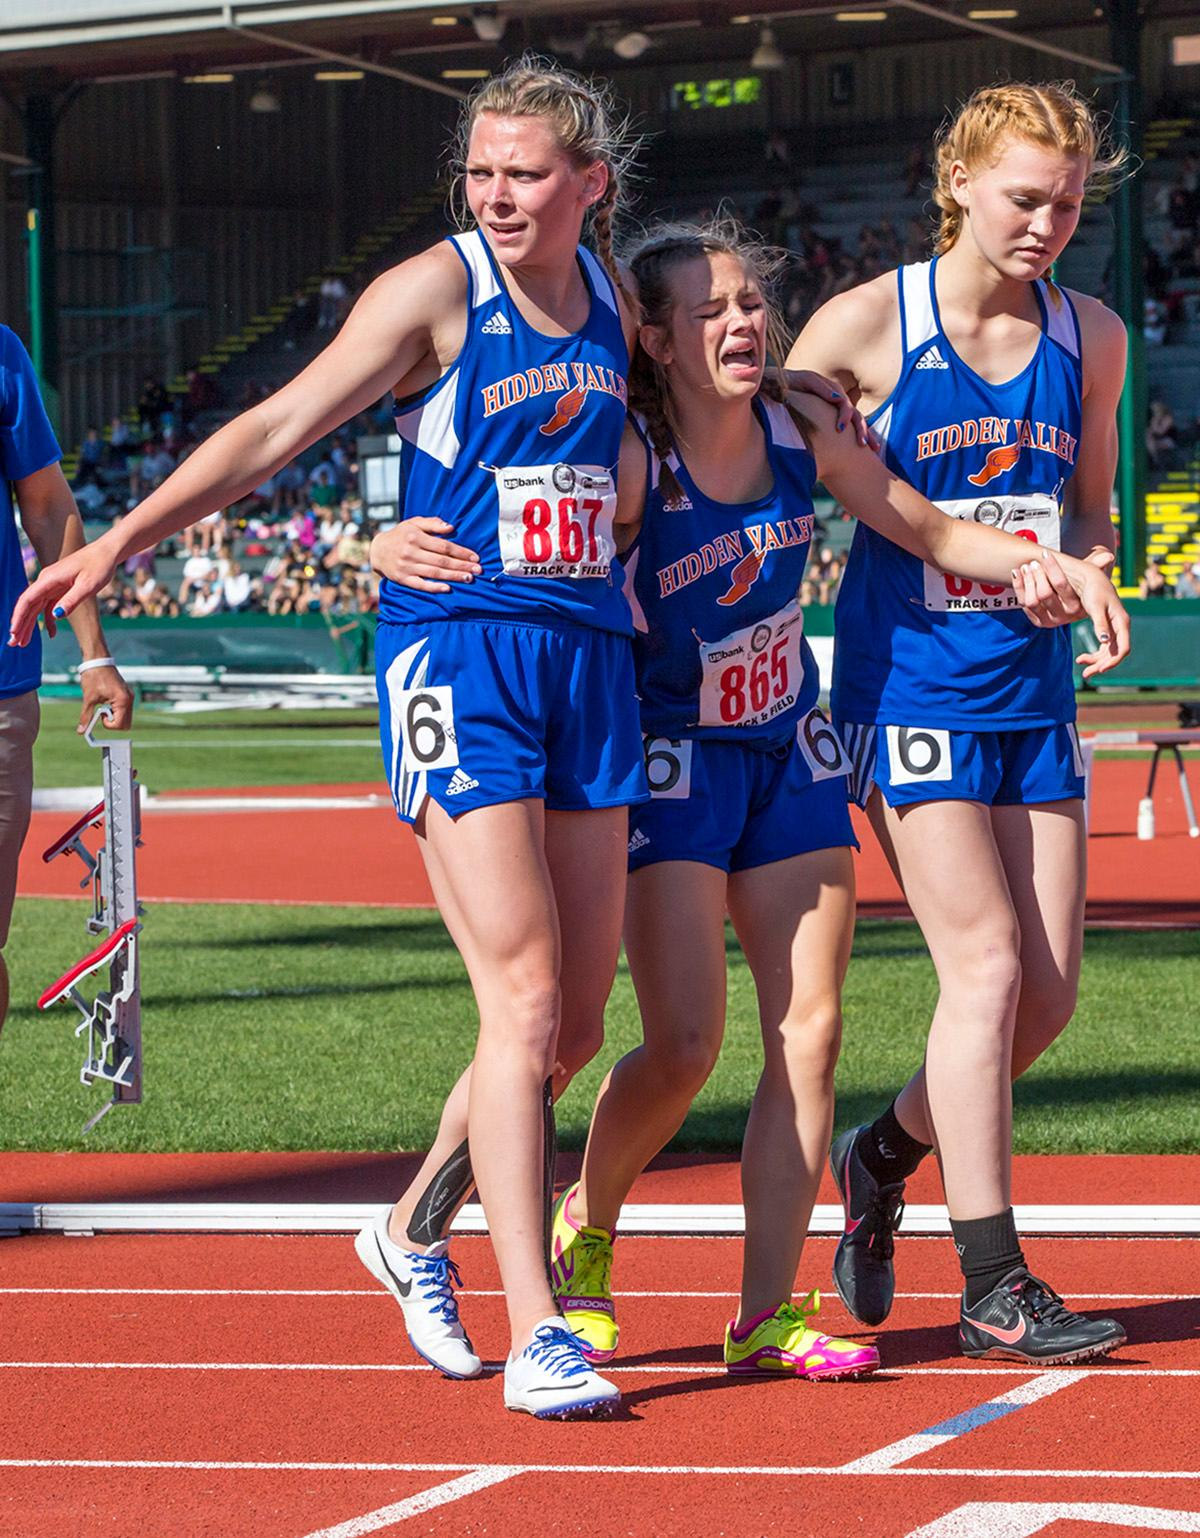 Hidden Valley wins the 4A Girls 4x400 meter relay with a time of 4:04.22 at the OSAA State Track Championships at Hayward Field on Saturday. Photo by James Wegter, Oregon News Lab